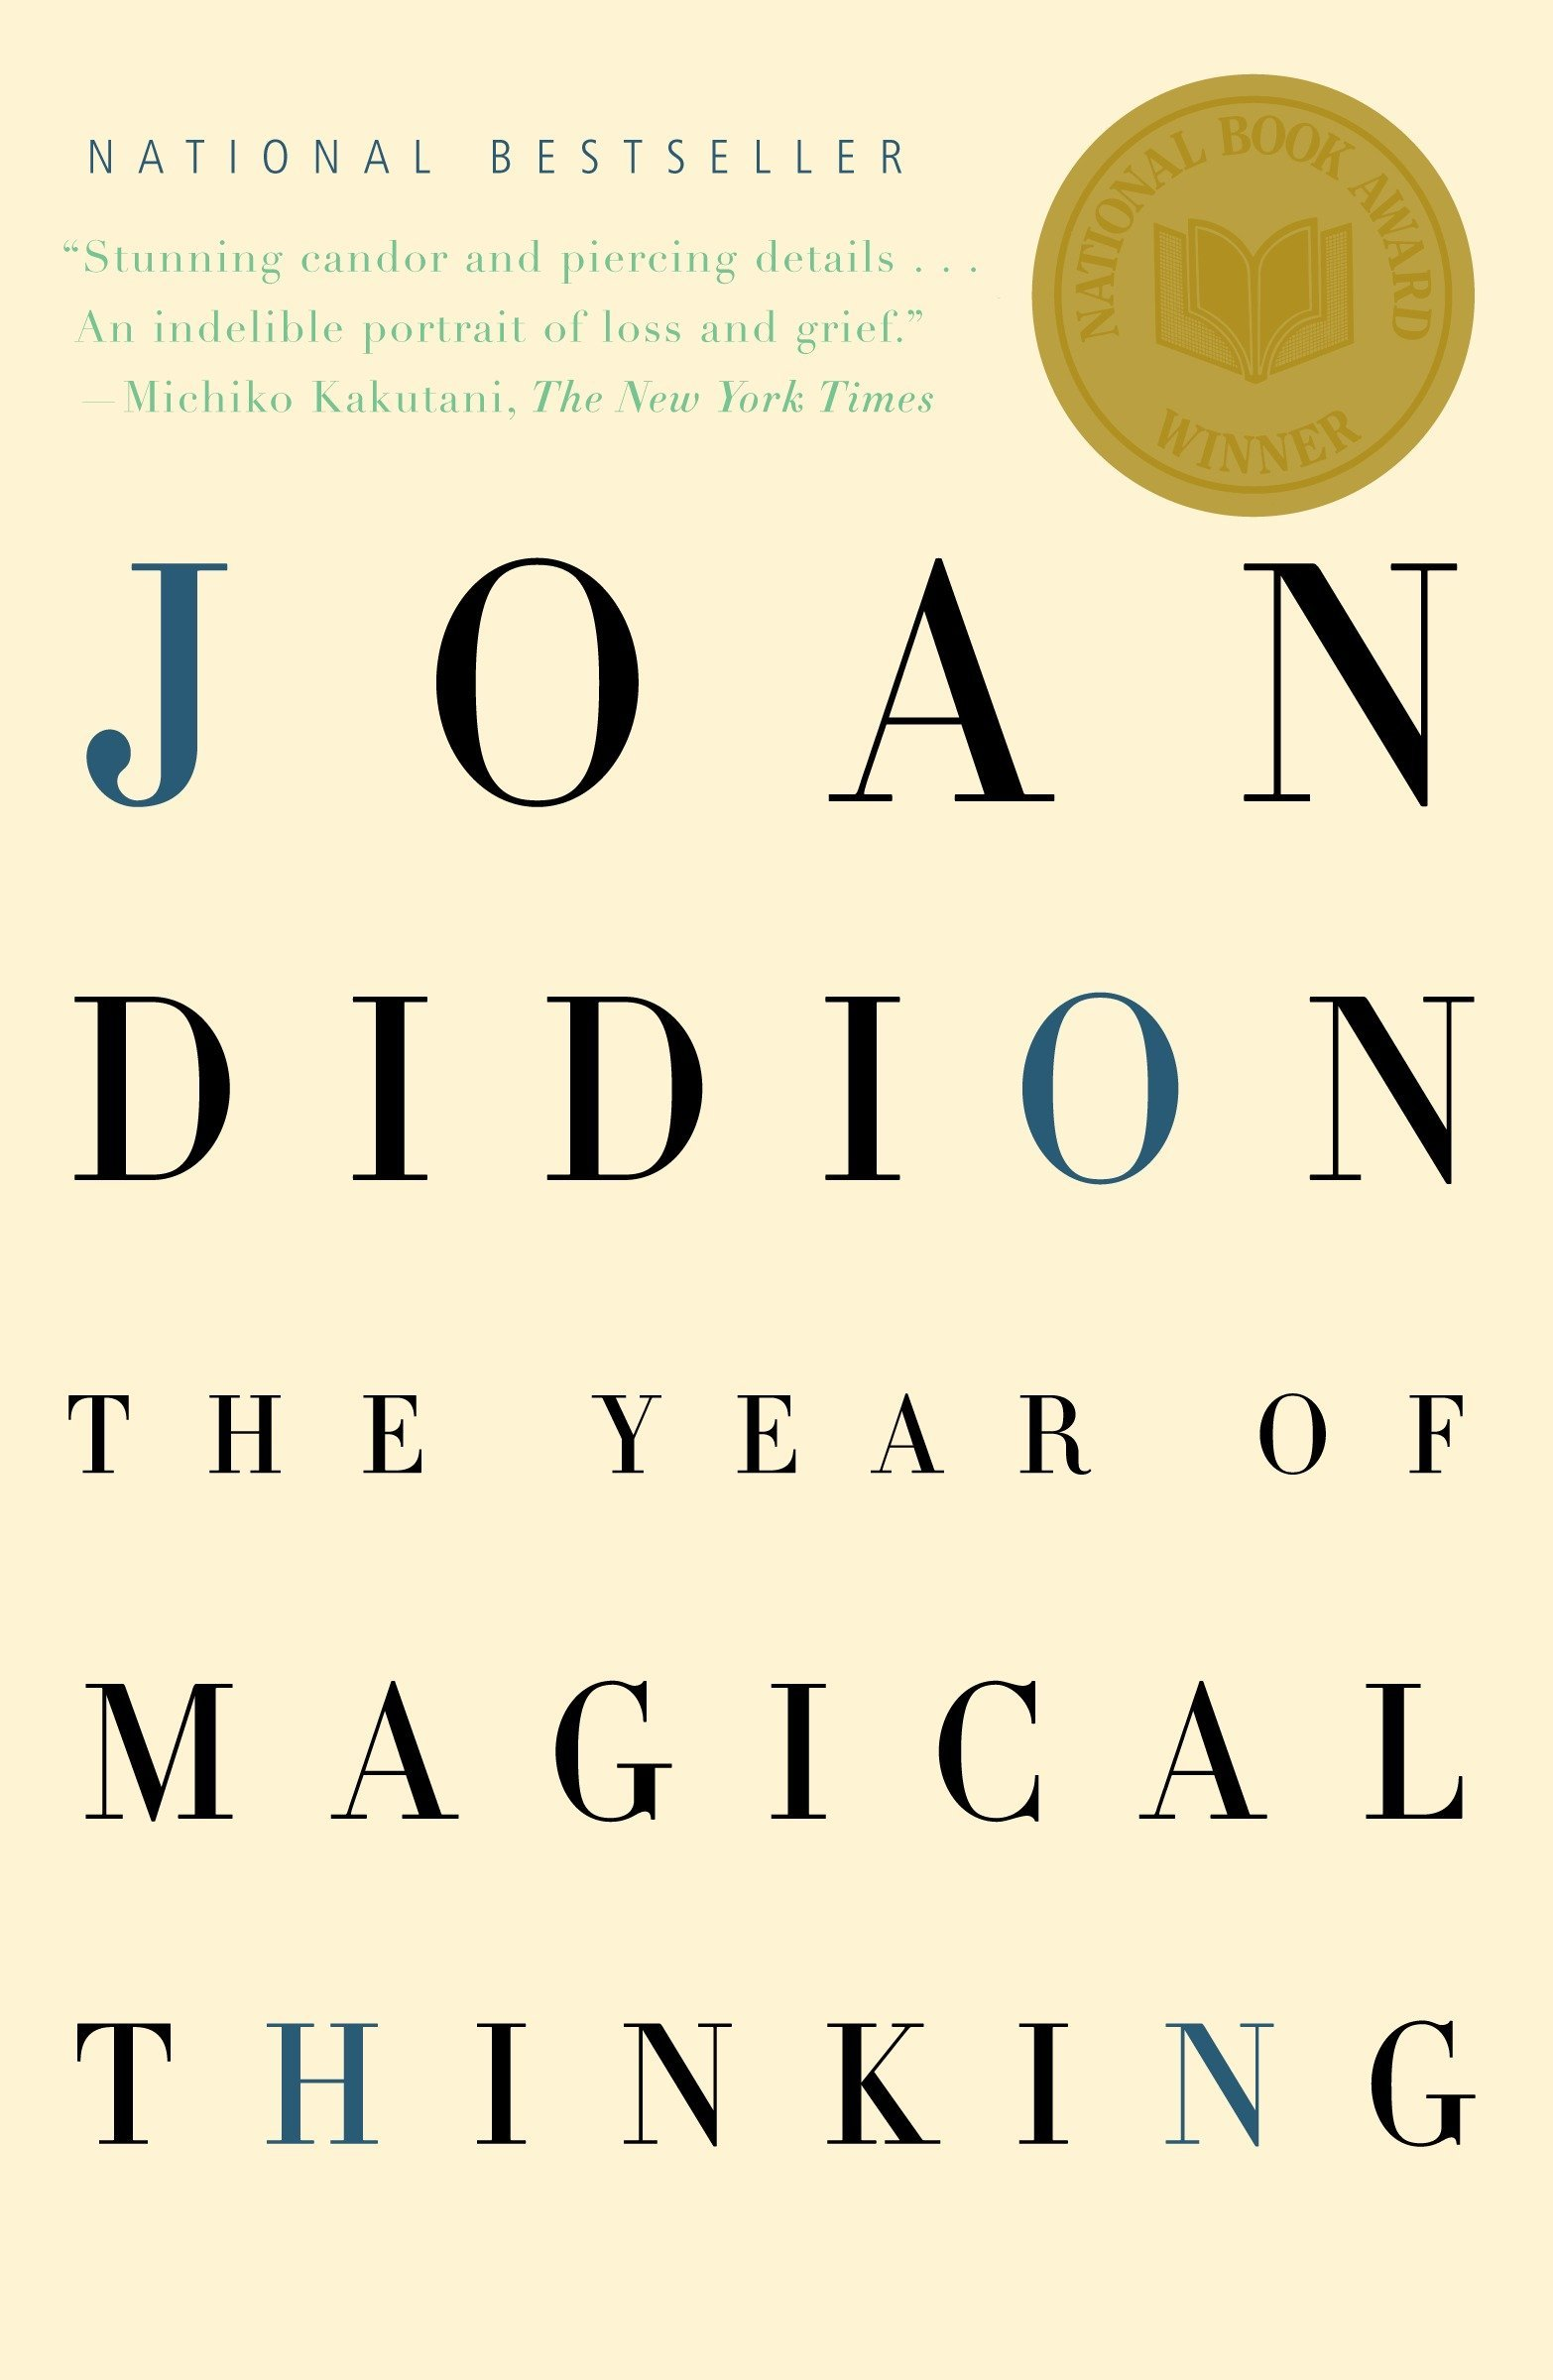 """The Year of Magical Thinking"" by Joan Didion - Read more on Amazon.com"